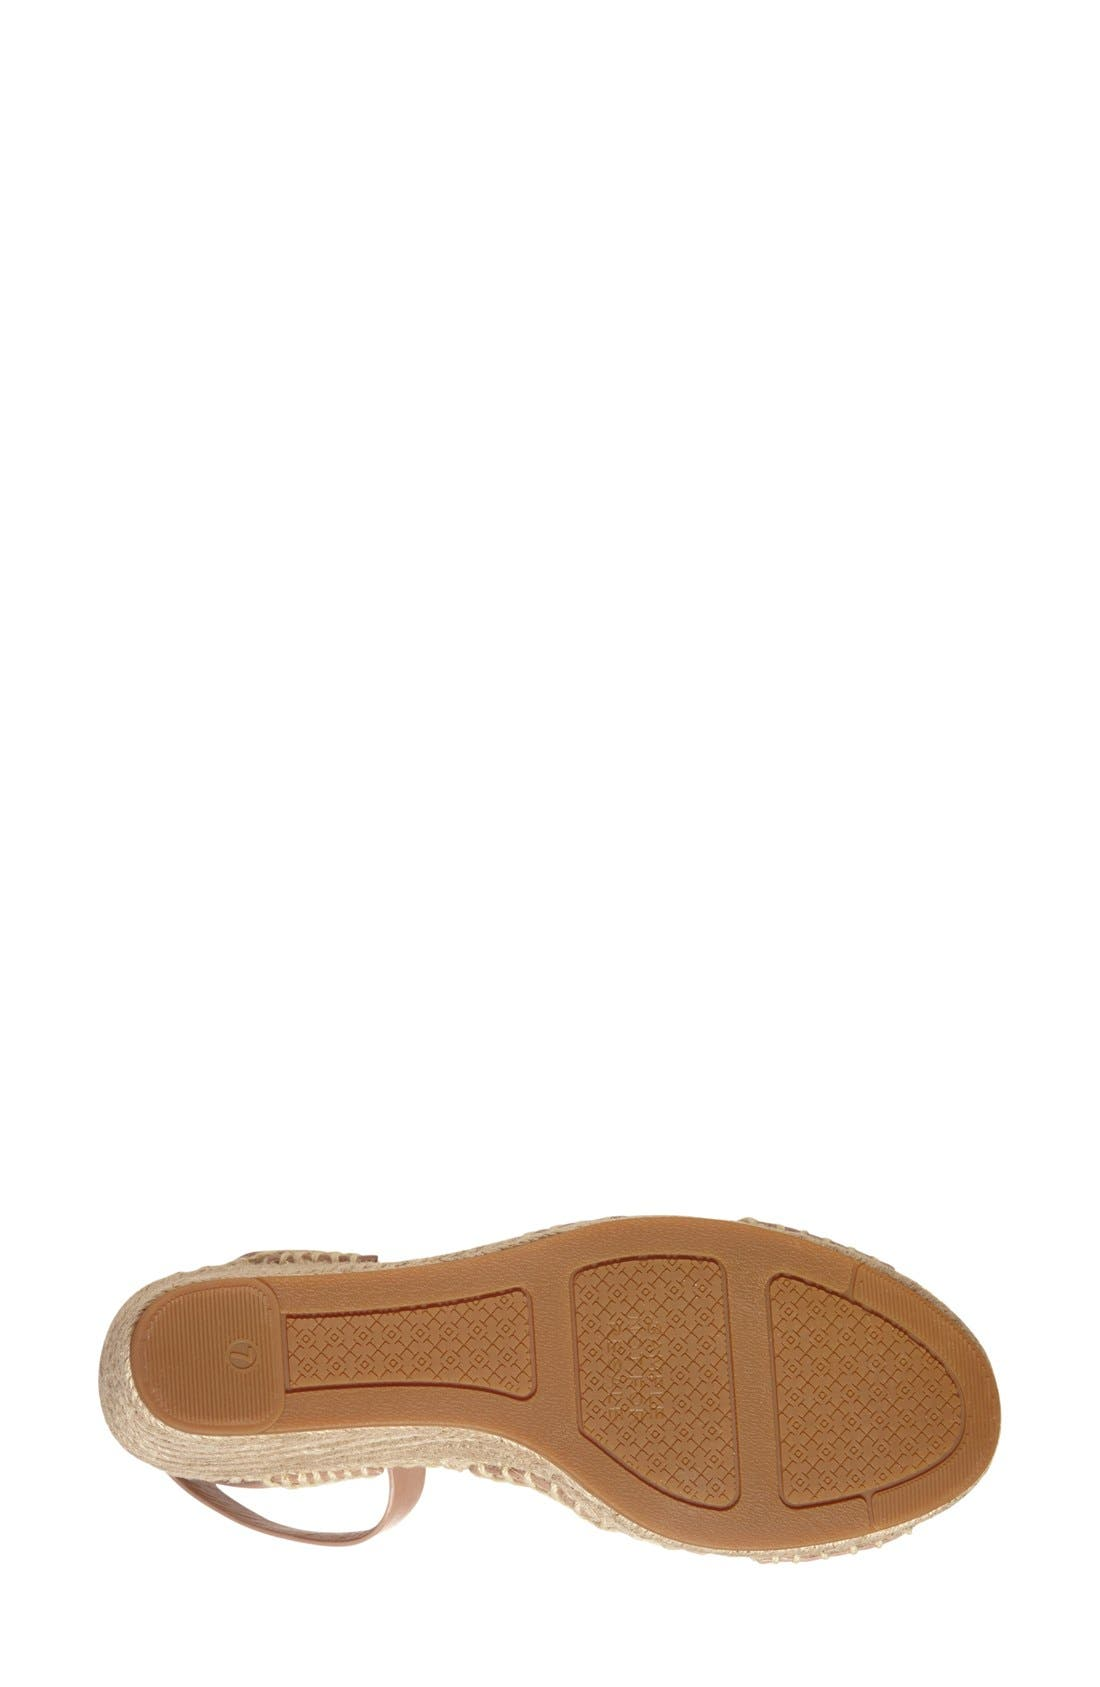 Alternate Image 4  - Tory Burch 'Bima' Espadrille Wedge (Women)